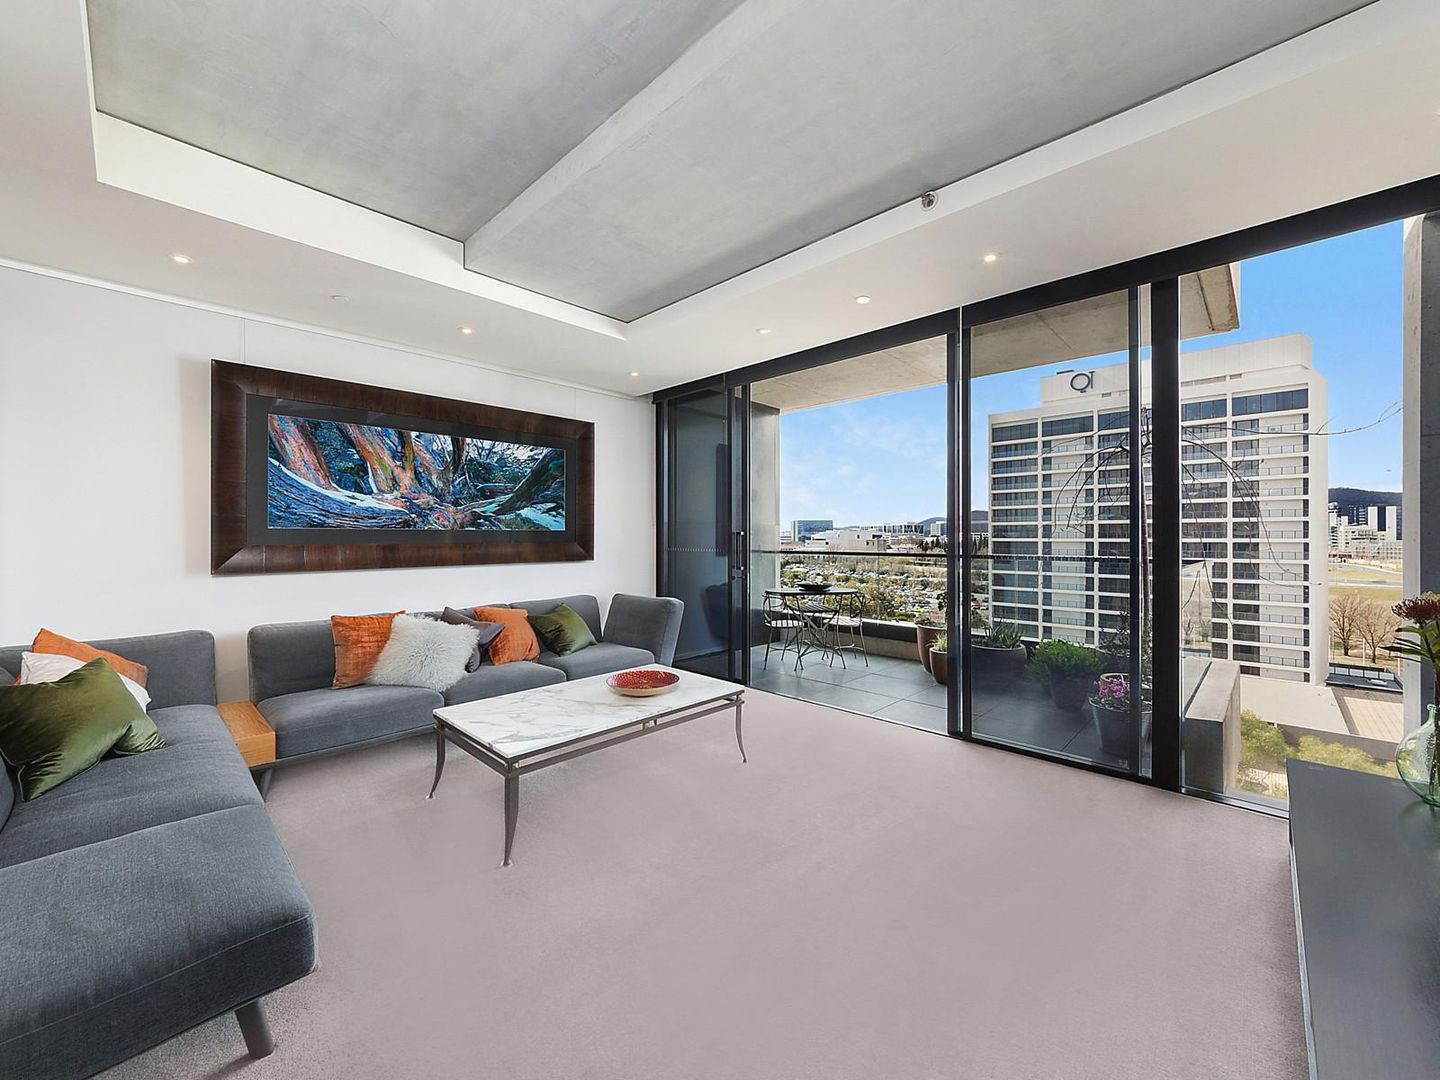 701/21 Marcus Clarke Street, City ACT 2601 - Apartment For